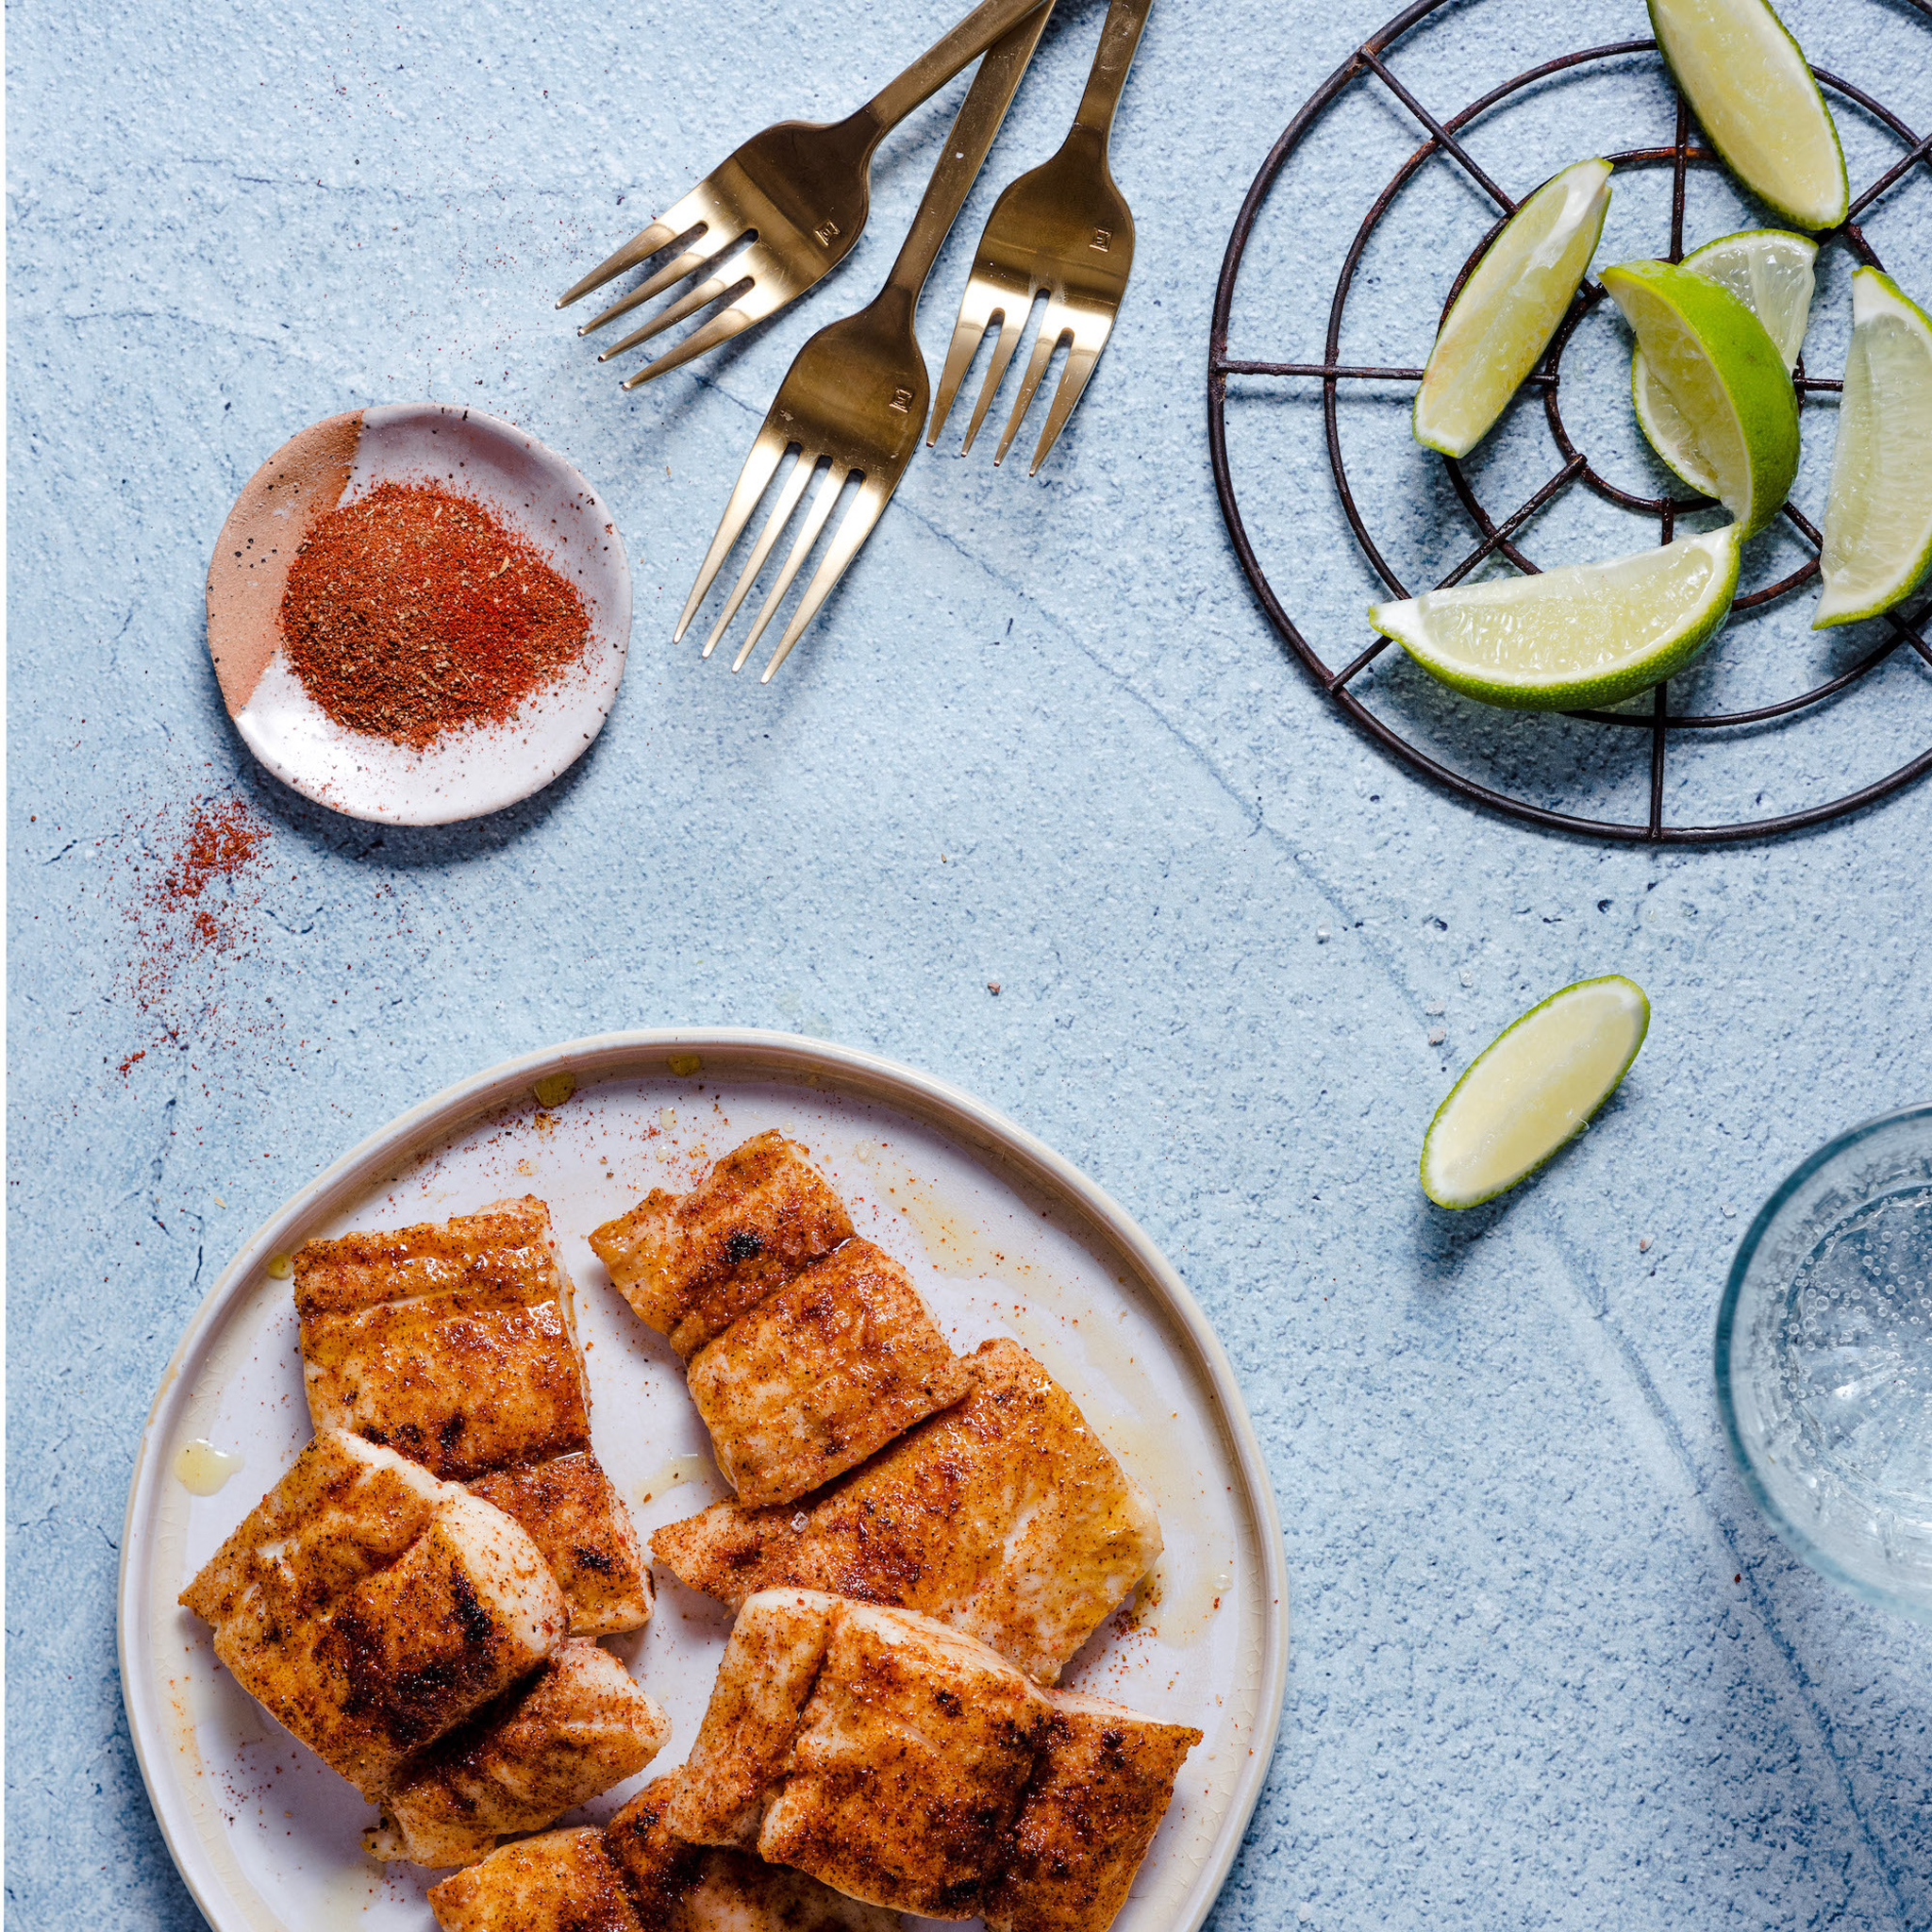 Earth Table | Mahi Mahi With Chili Lime Seasoning Blend